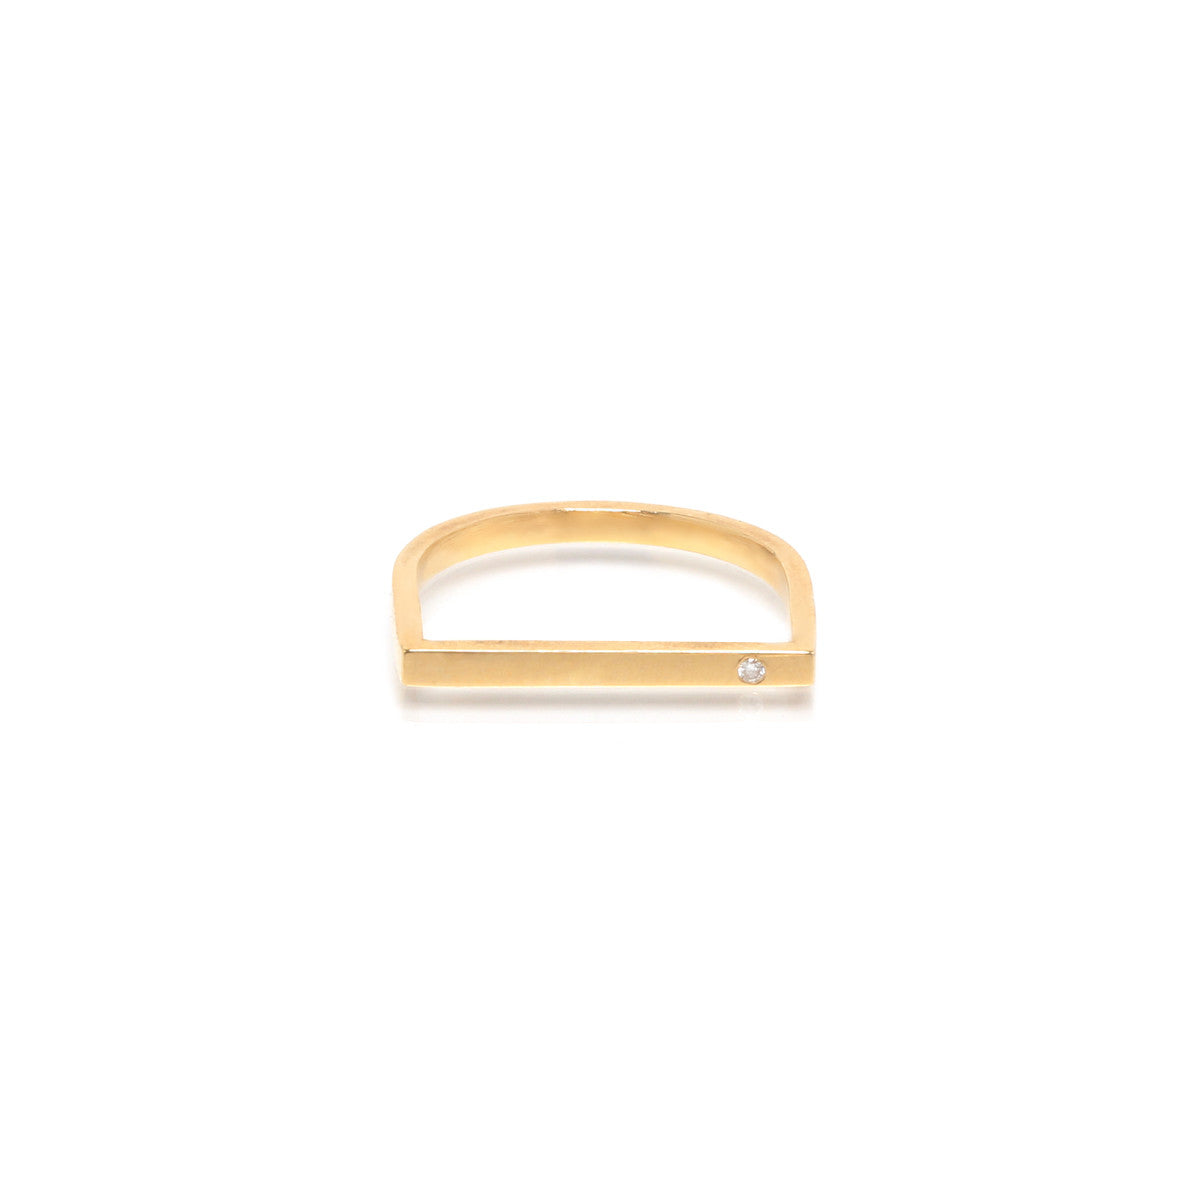 14k single diamond flat top bar ring